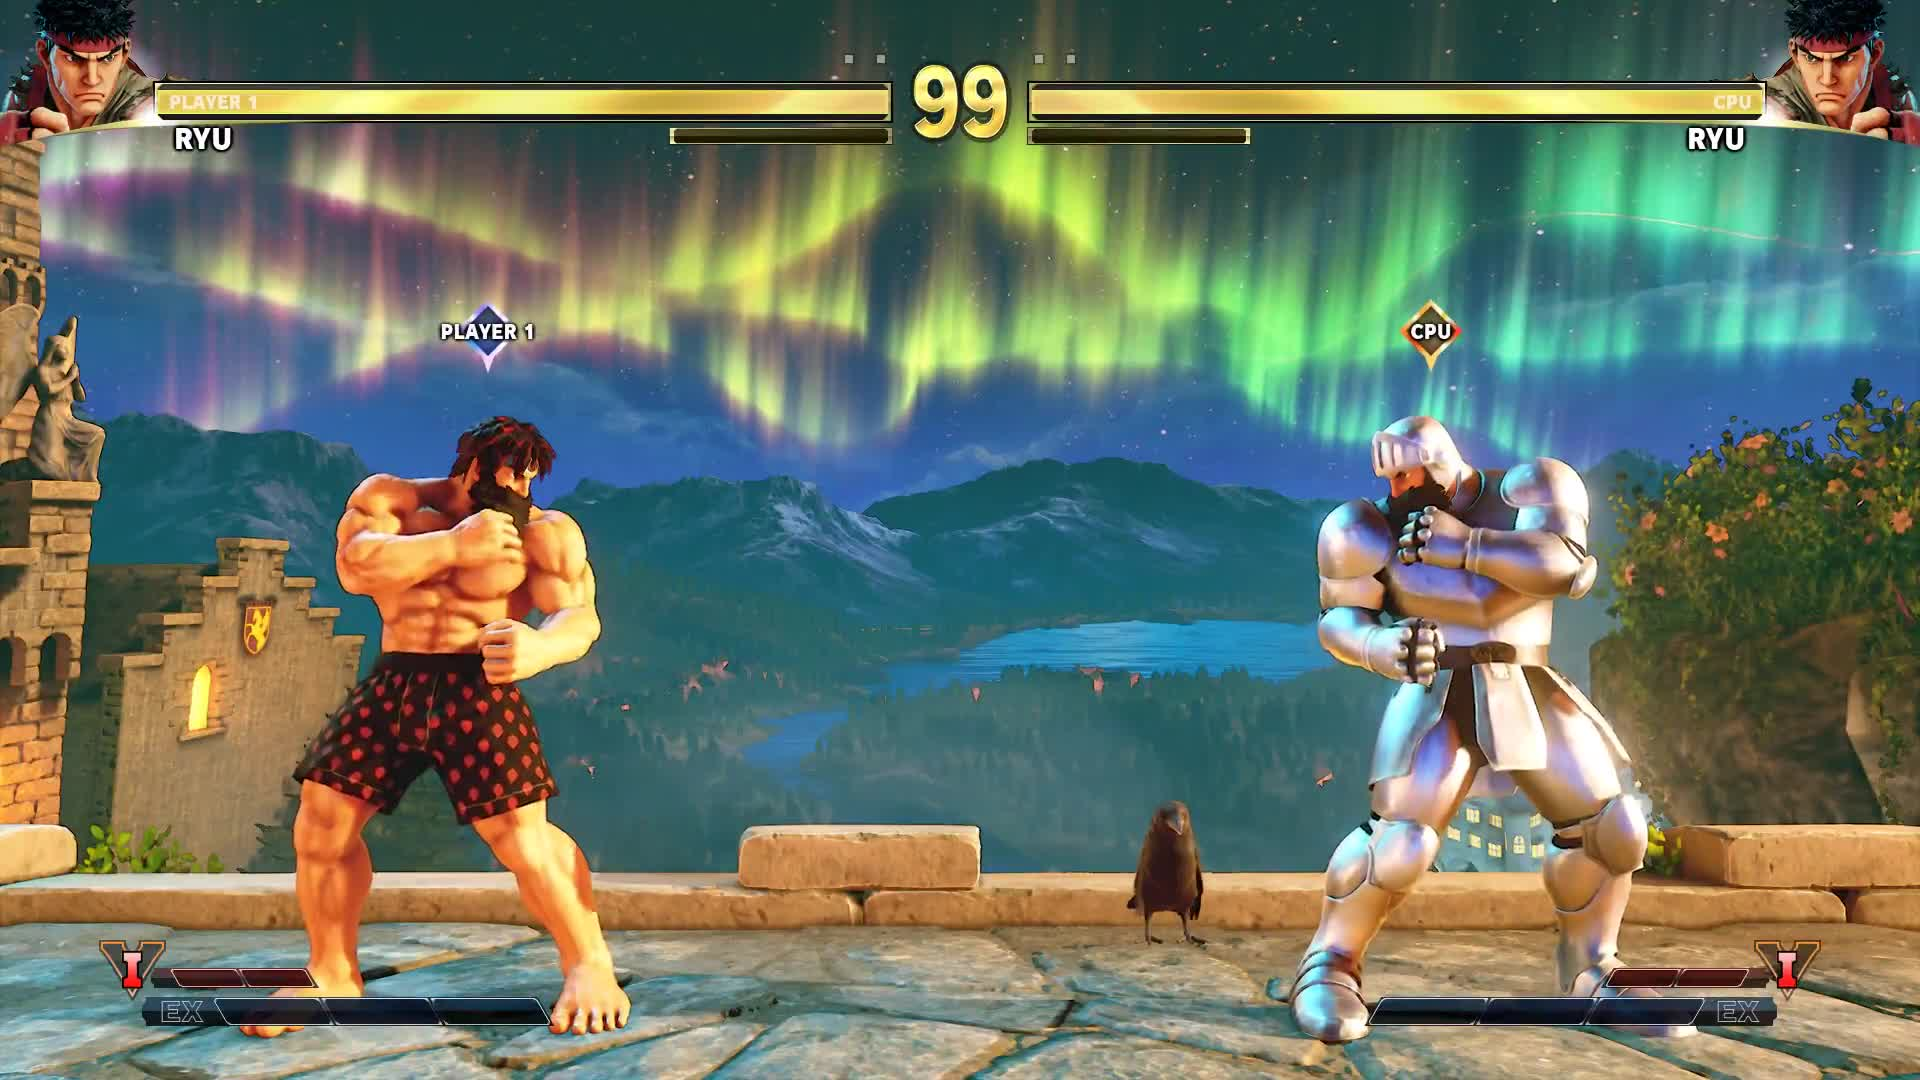 IvanLeTerrible, SF5, SFV, fighter, fighting, game, gaming, streetfighter, video game, videogame, Ryu Ghouls and Goblins outfit - Street fighter V GIFs